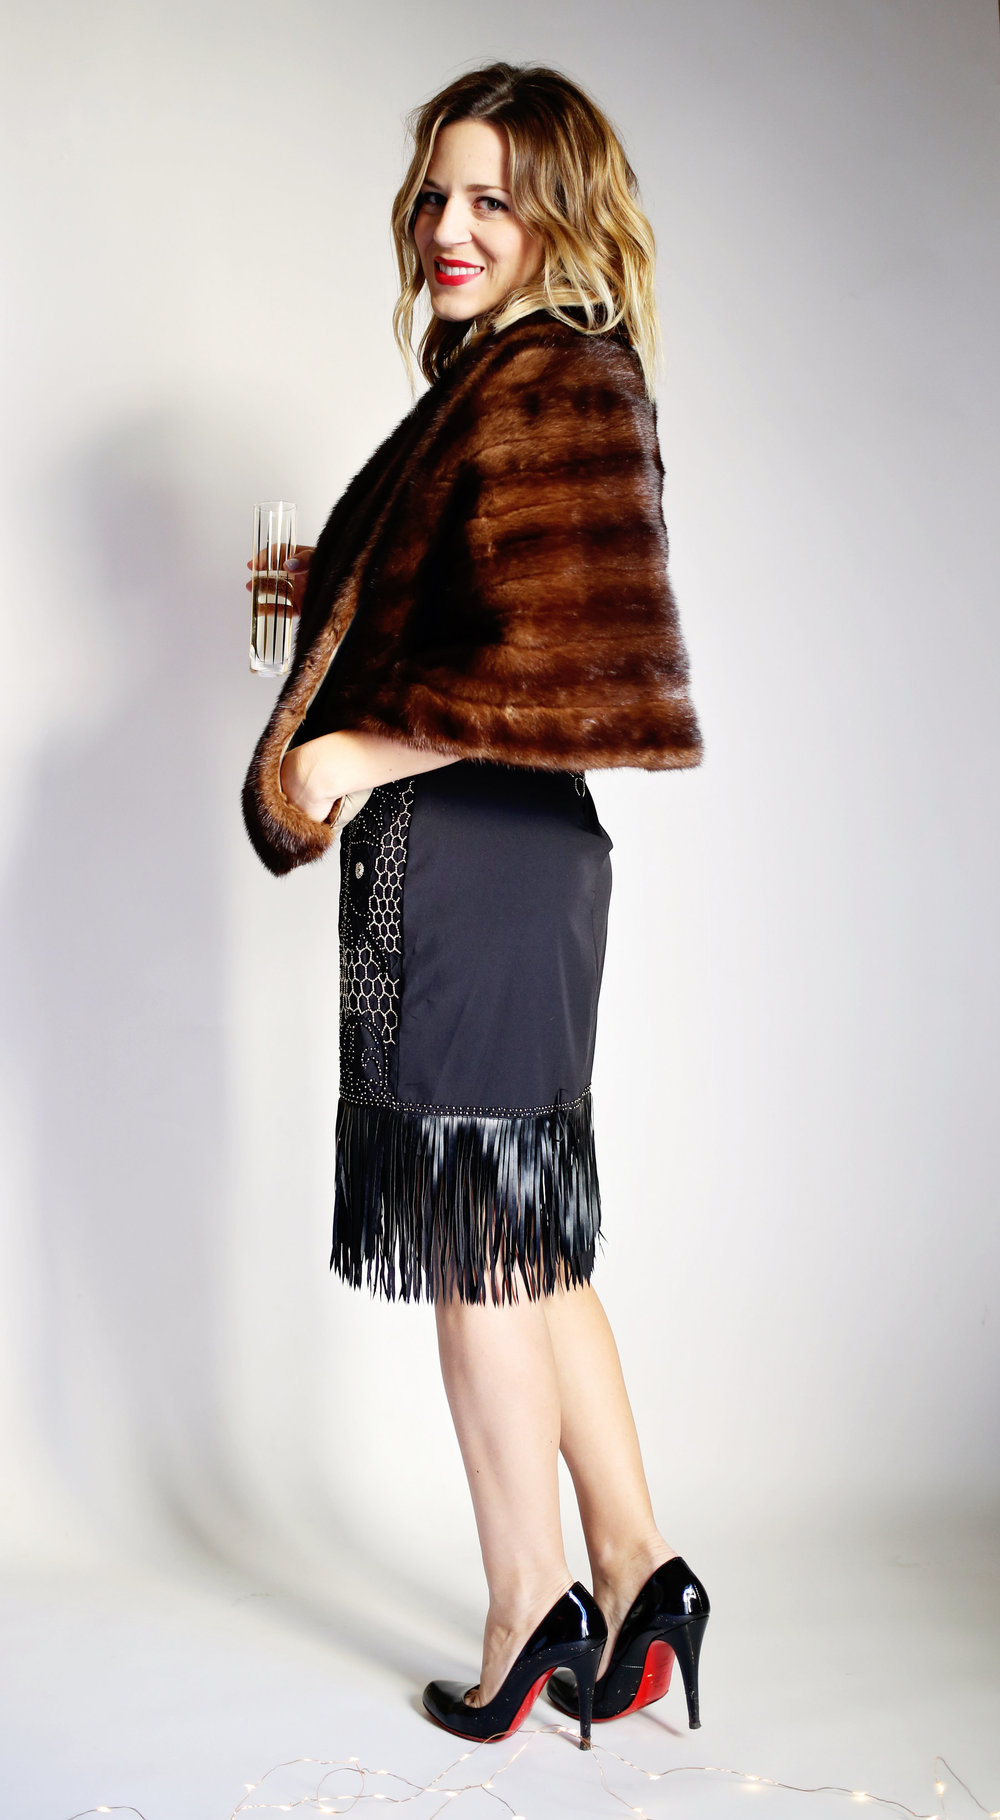 New years eve outfit by yoana baraschi 2.jpg